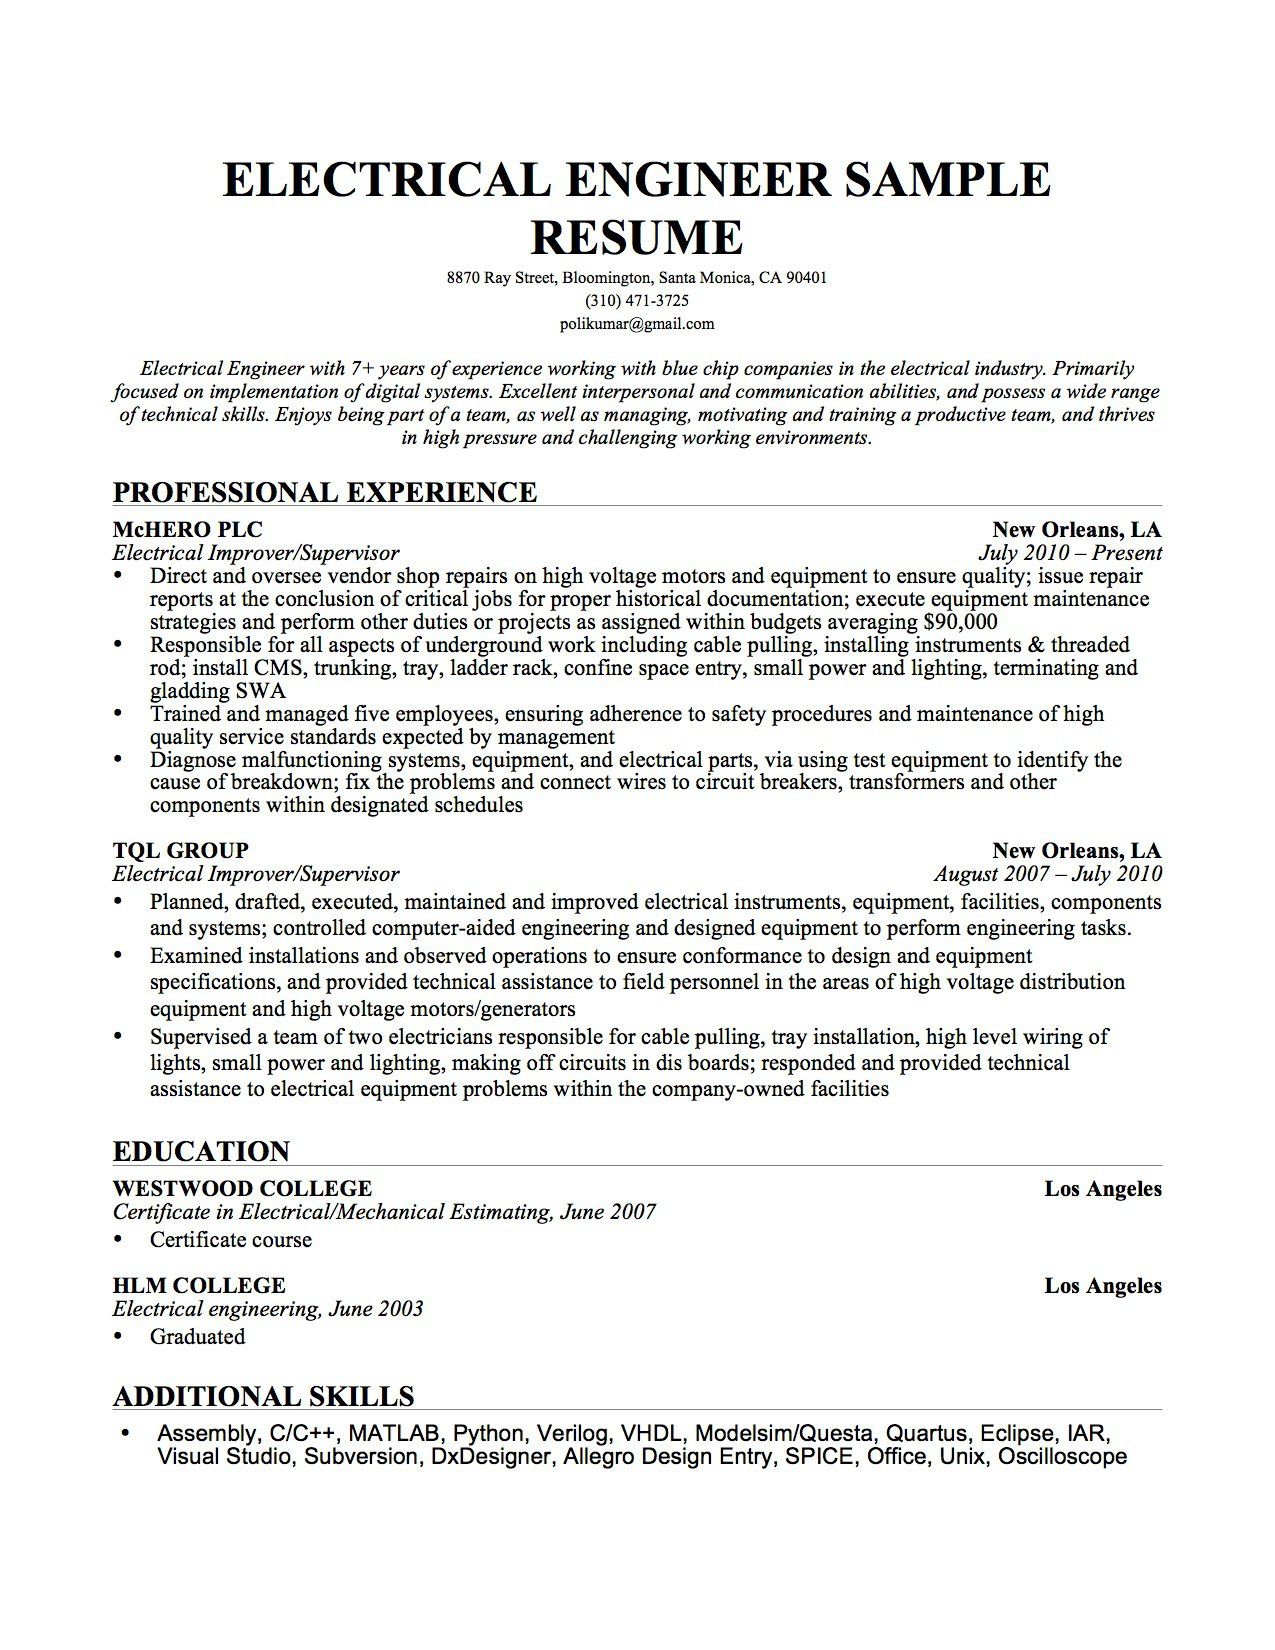 Charmant [Computer Hardware Engineer Sample Resume Weld Inspector Cover Letter  Engineering Power Plant Electrical Resumeample Jobs] Warning: Invalid  Argument ...